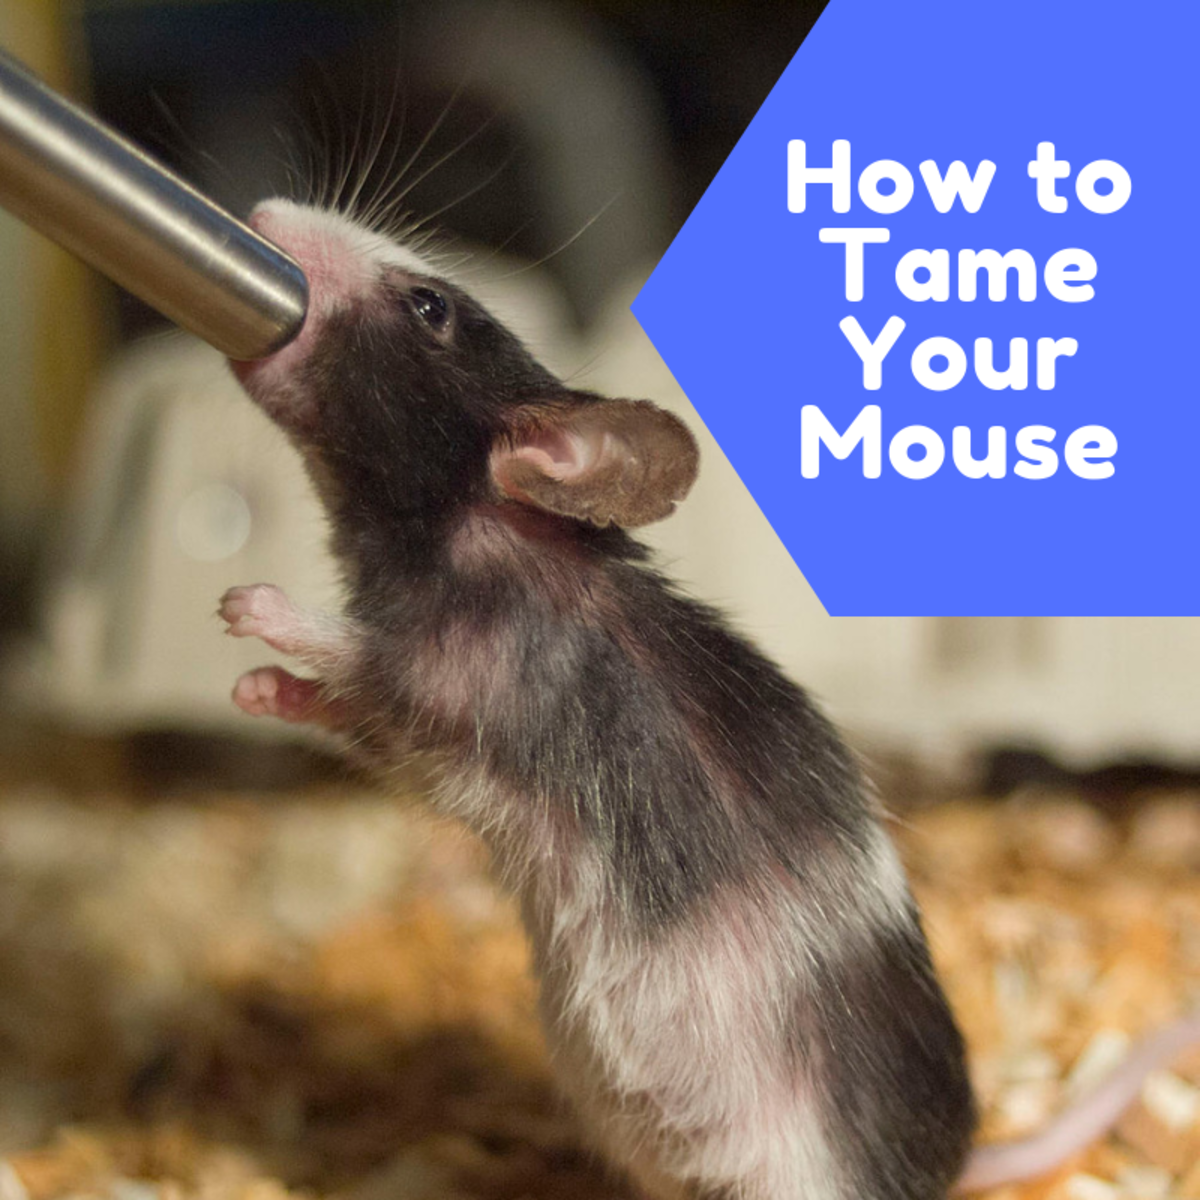 How to Bond With Your Pet Mouse and Get It to Like You